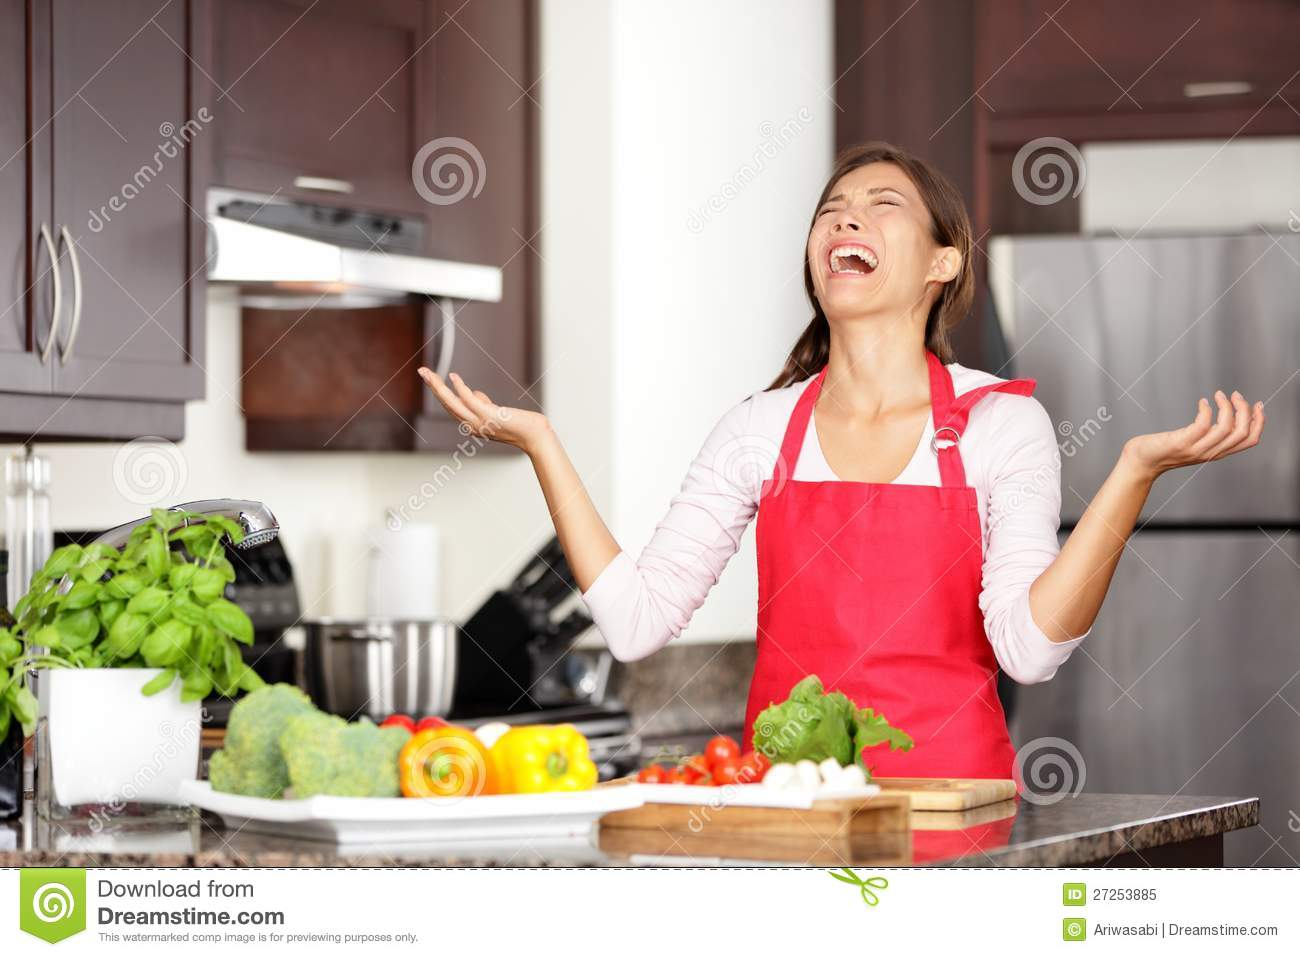 Funny Cooking Image Stock Of Chinese